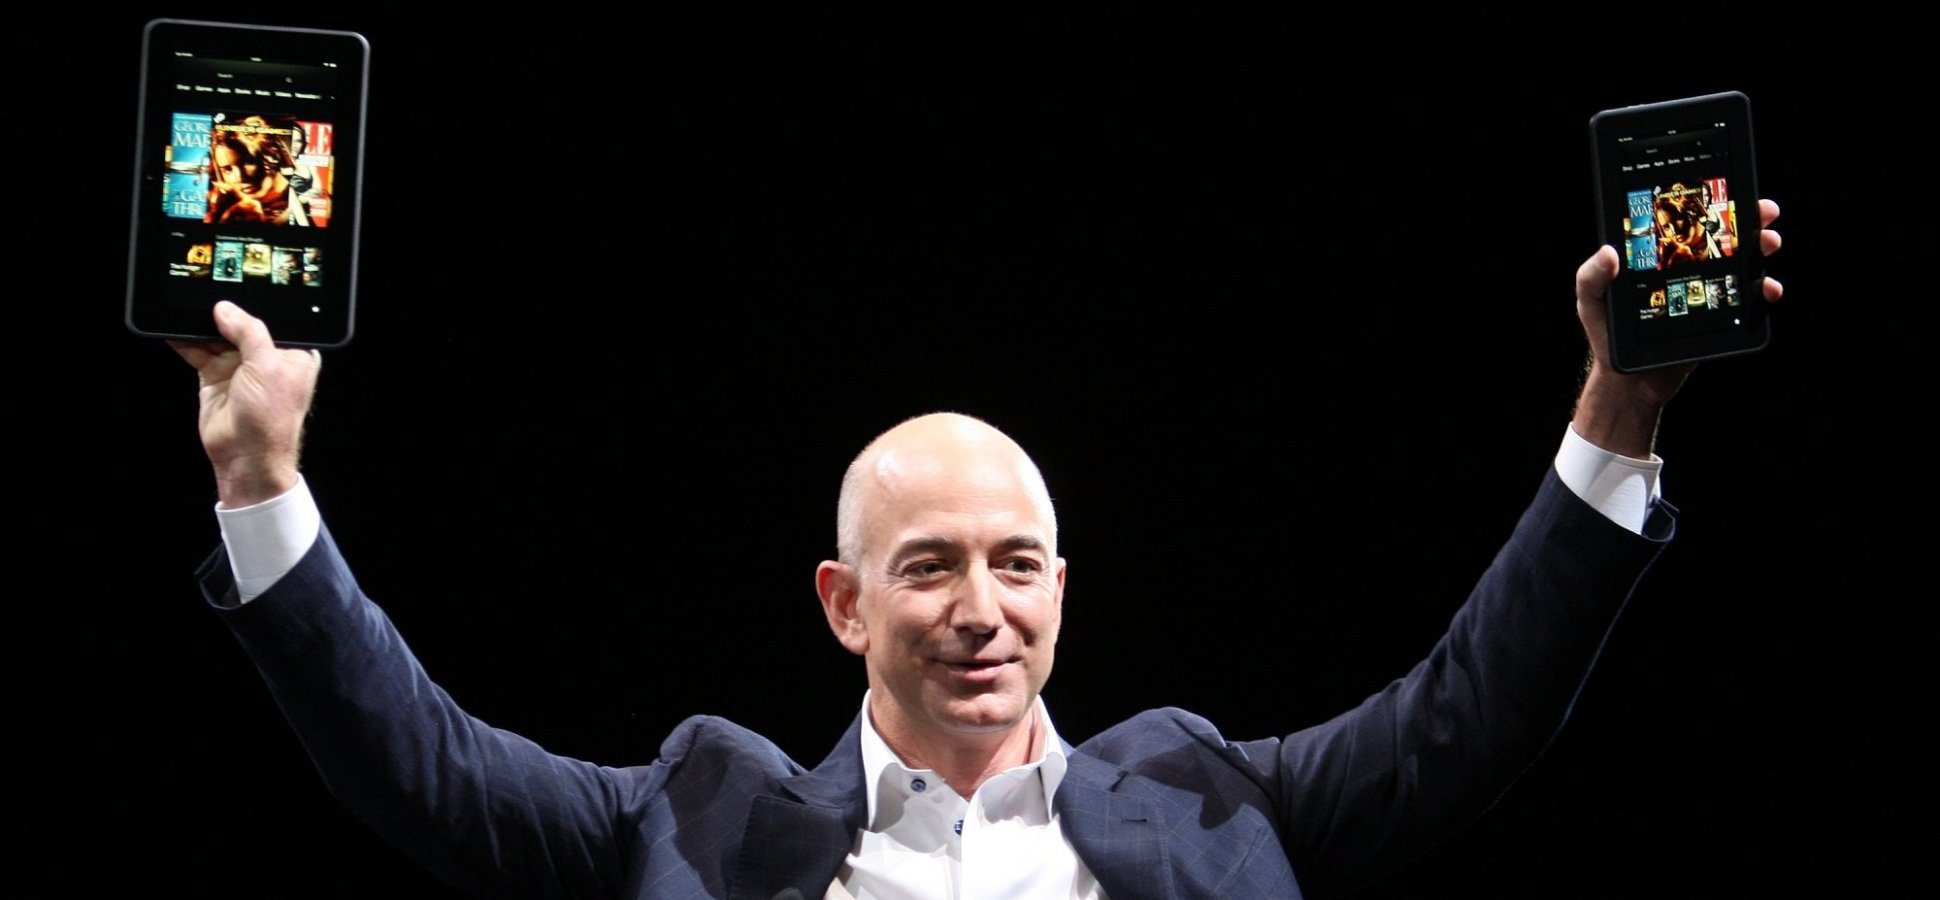 Amazon CEO Jeff Bezos Just Summed Up in 2 Words What Separates Winners From Dreamers